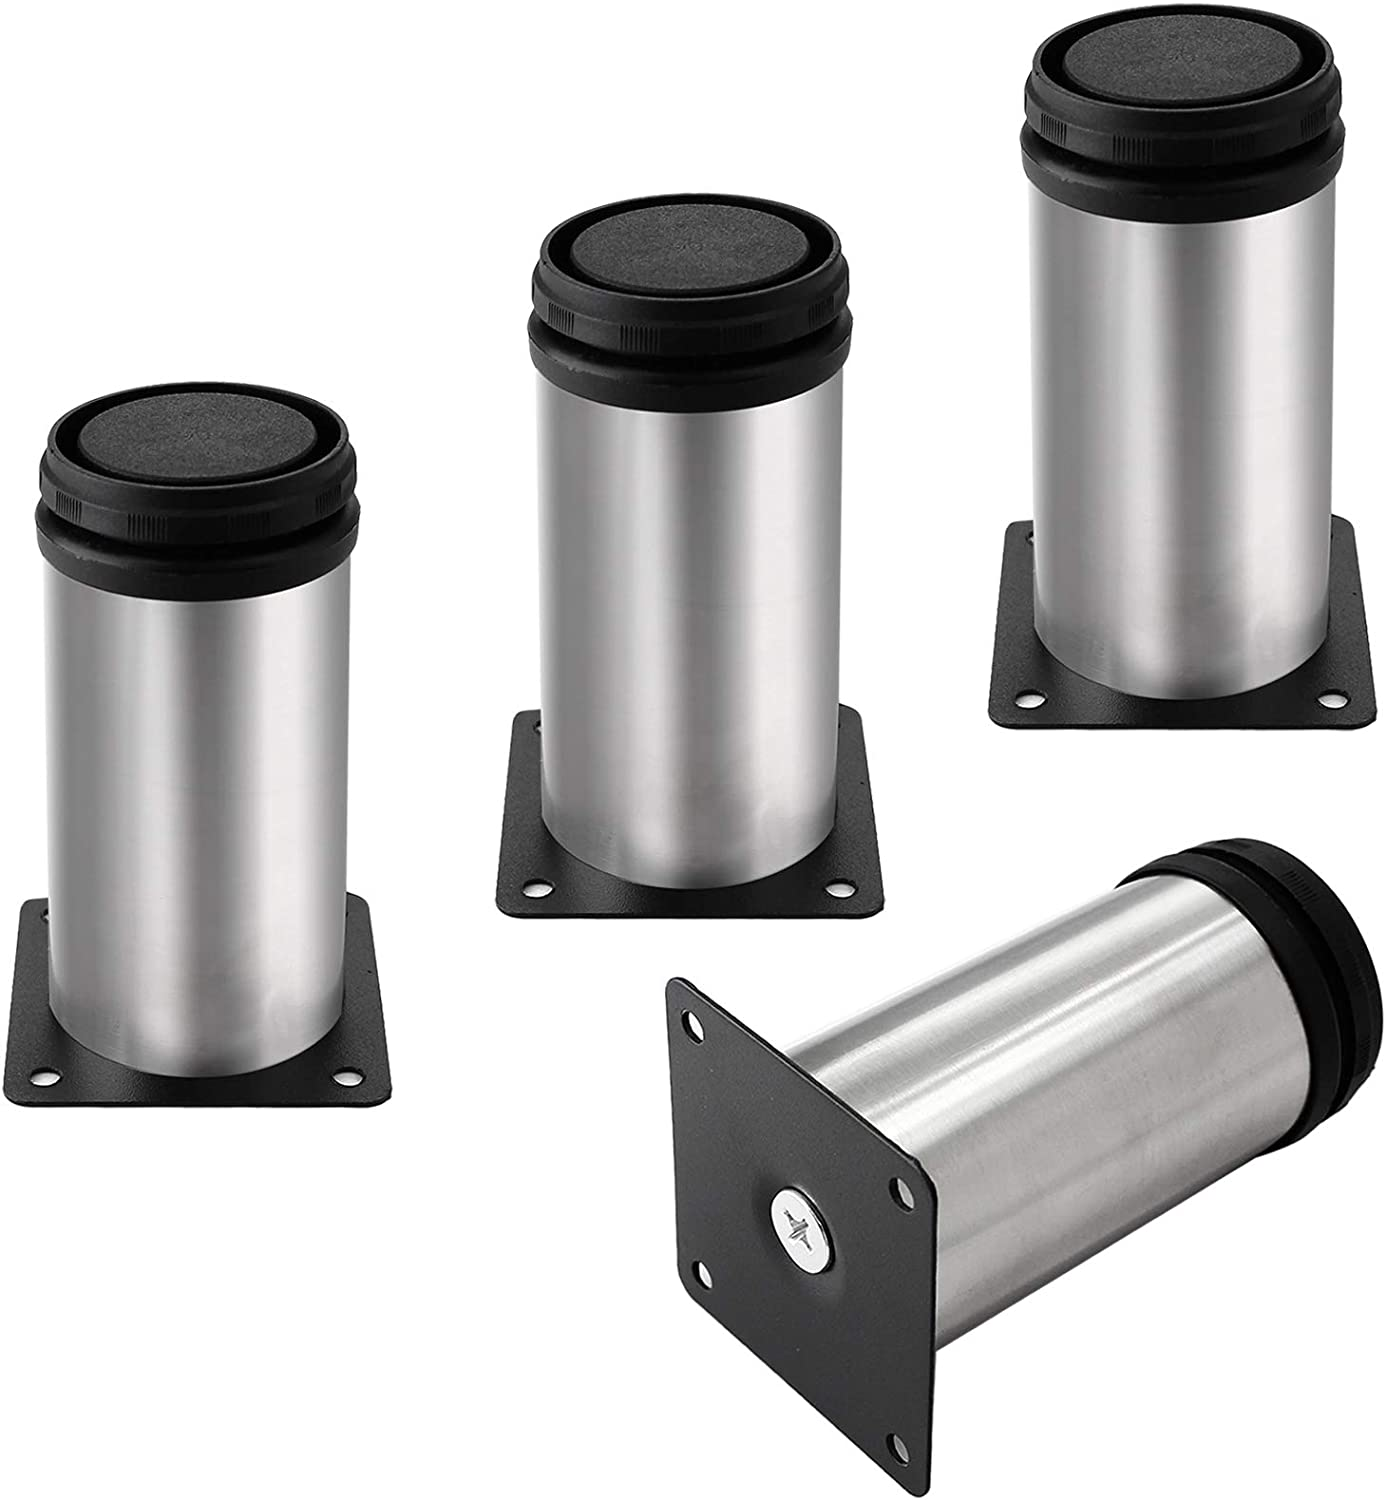 Kyuionty Set of 4 Stainless Steel Furniture Legs 4 Inch, Adjustable Round Cabinet Legs 2